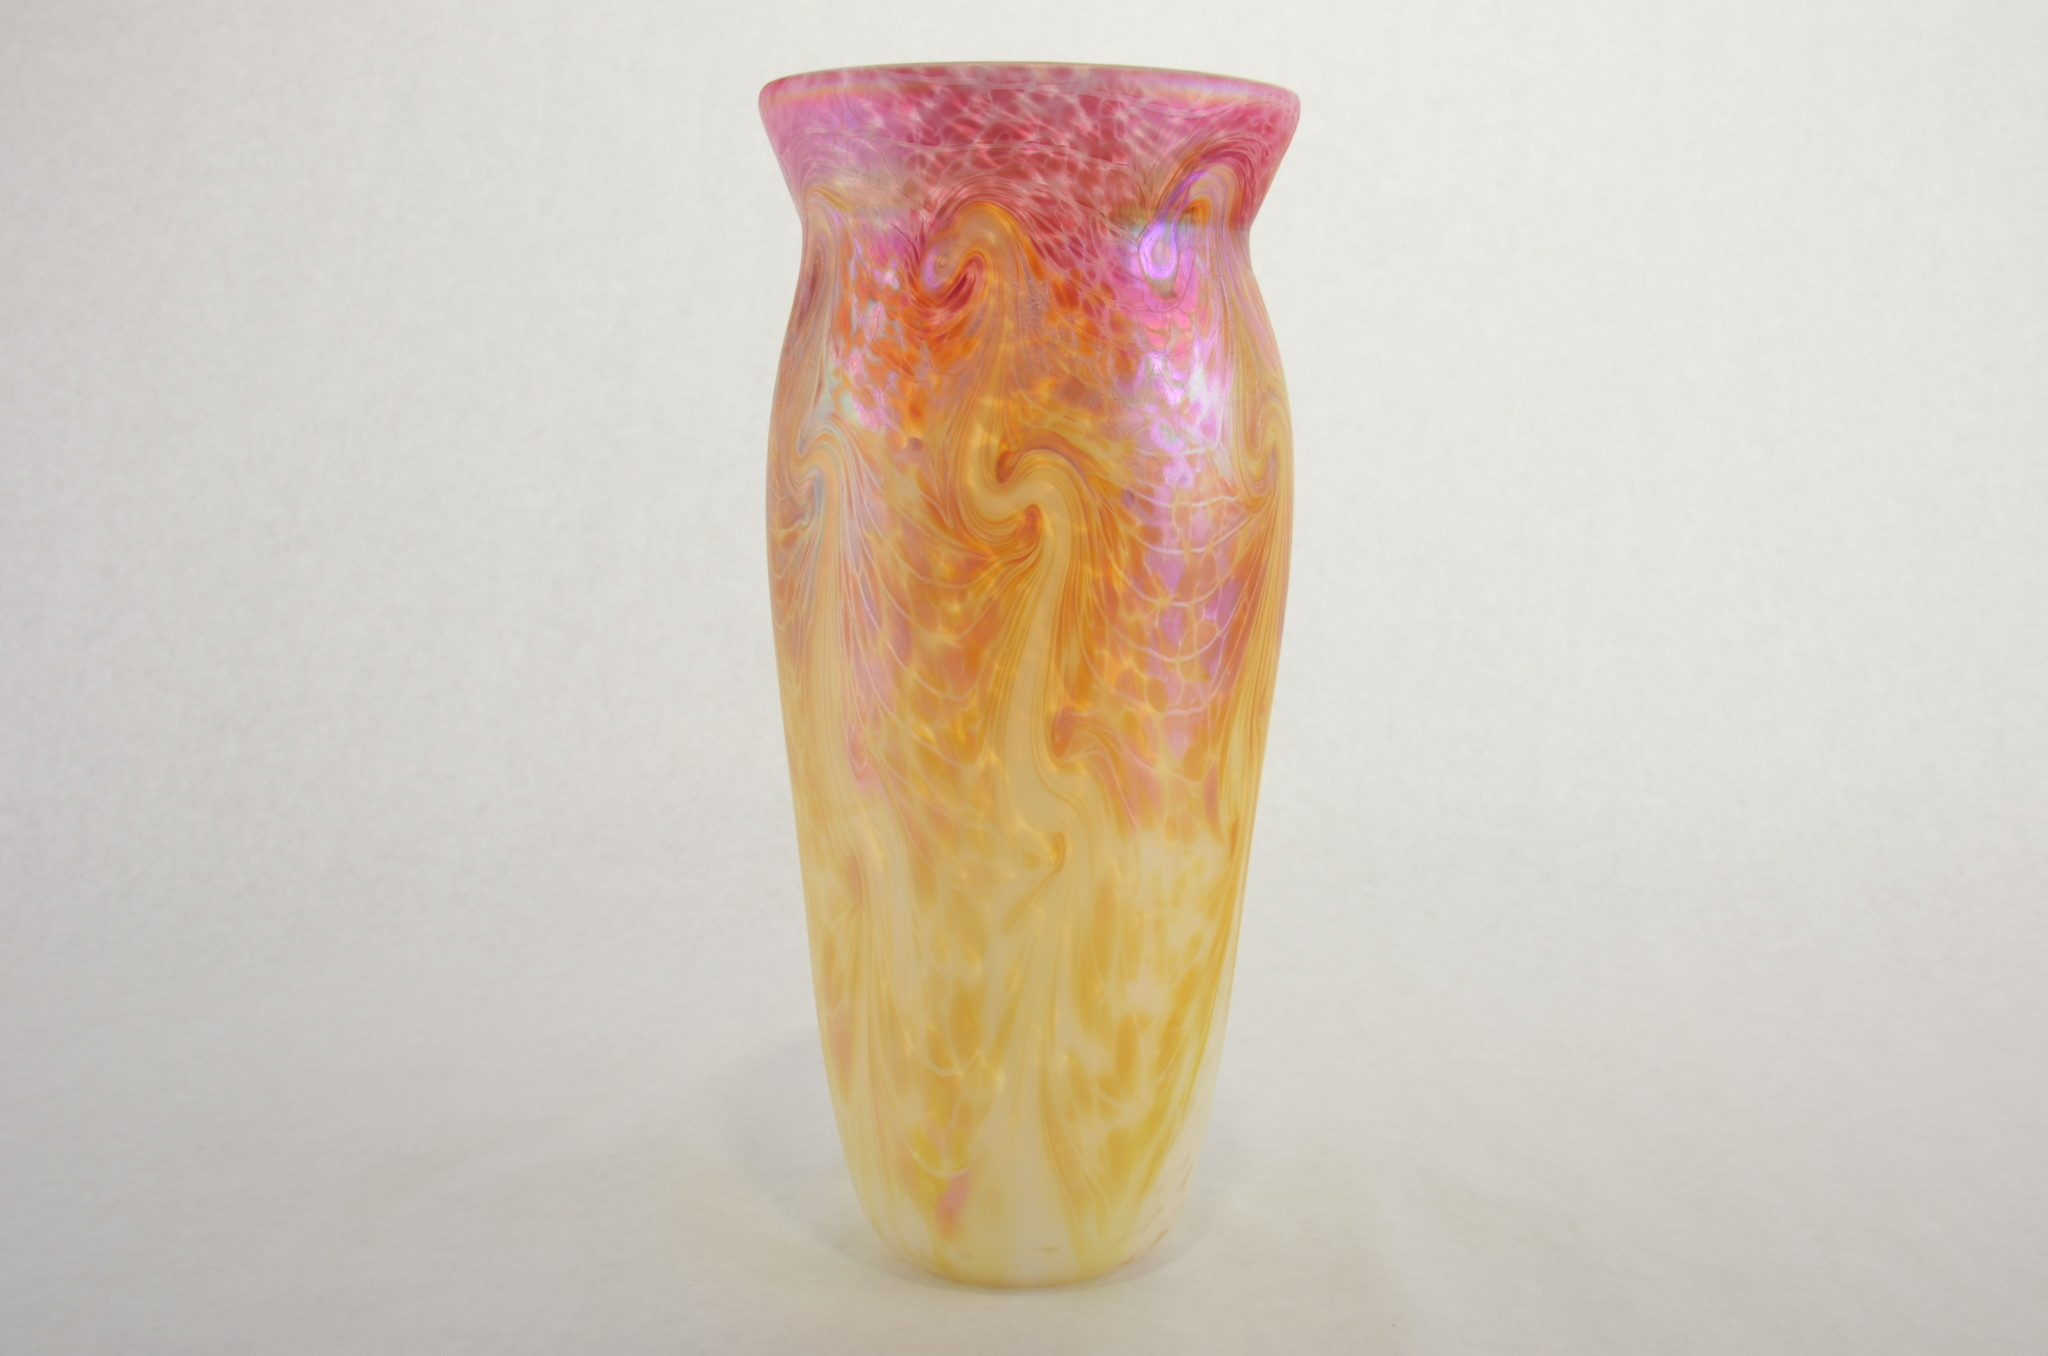 Eric Dandurand Ascension Vase, Gold & Pink, Eric Dandurand